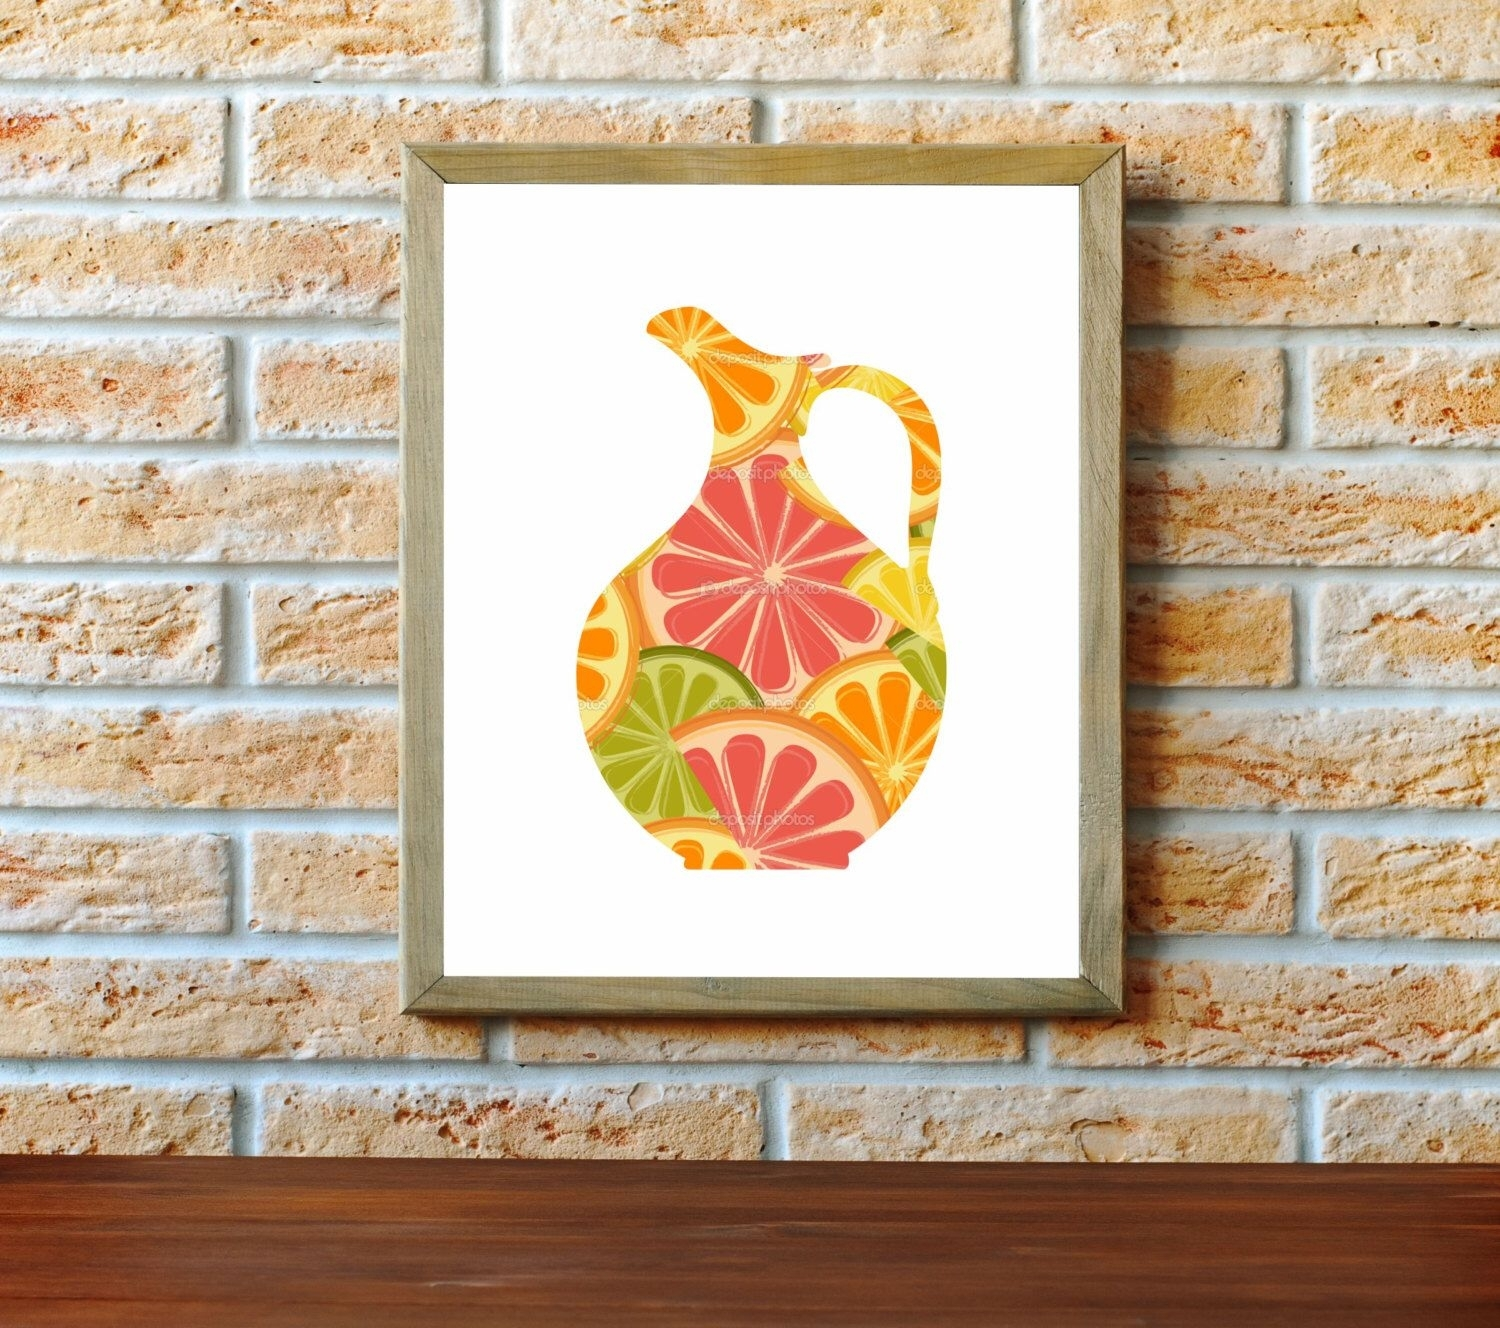 Kitchen Art Print, Dining Wall Decor, Orange Lemon & Lime, Kitchen Throughout Best And Newest Lemon Wall Art (Gallery 16 of 20)